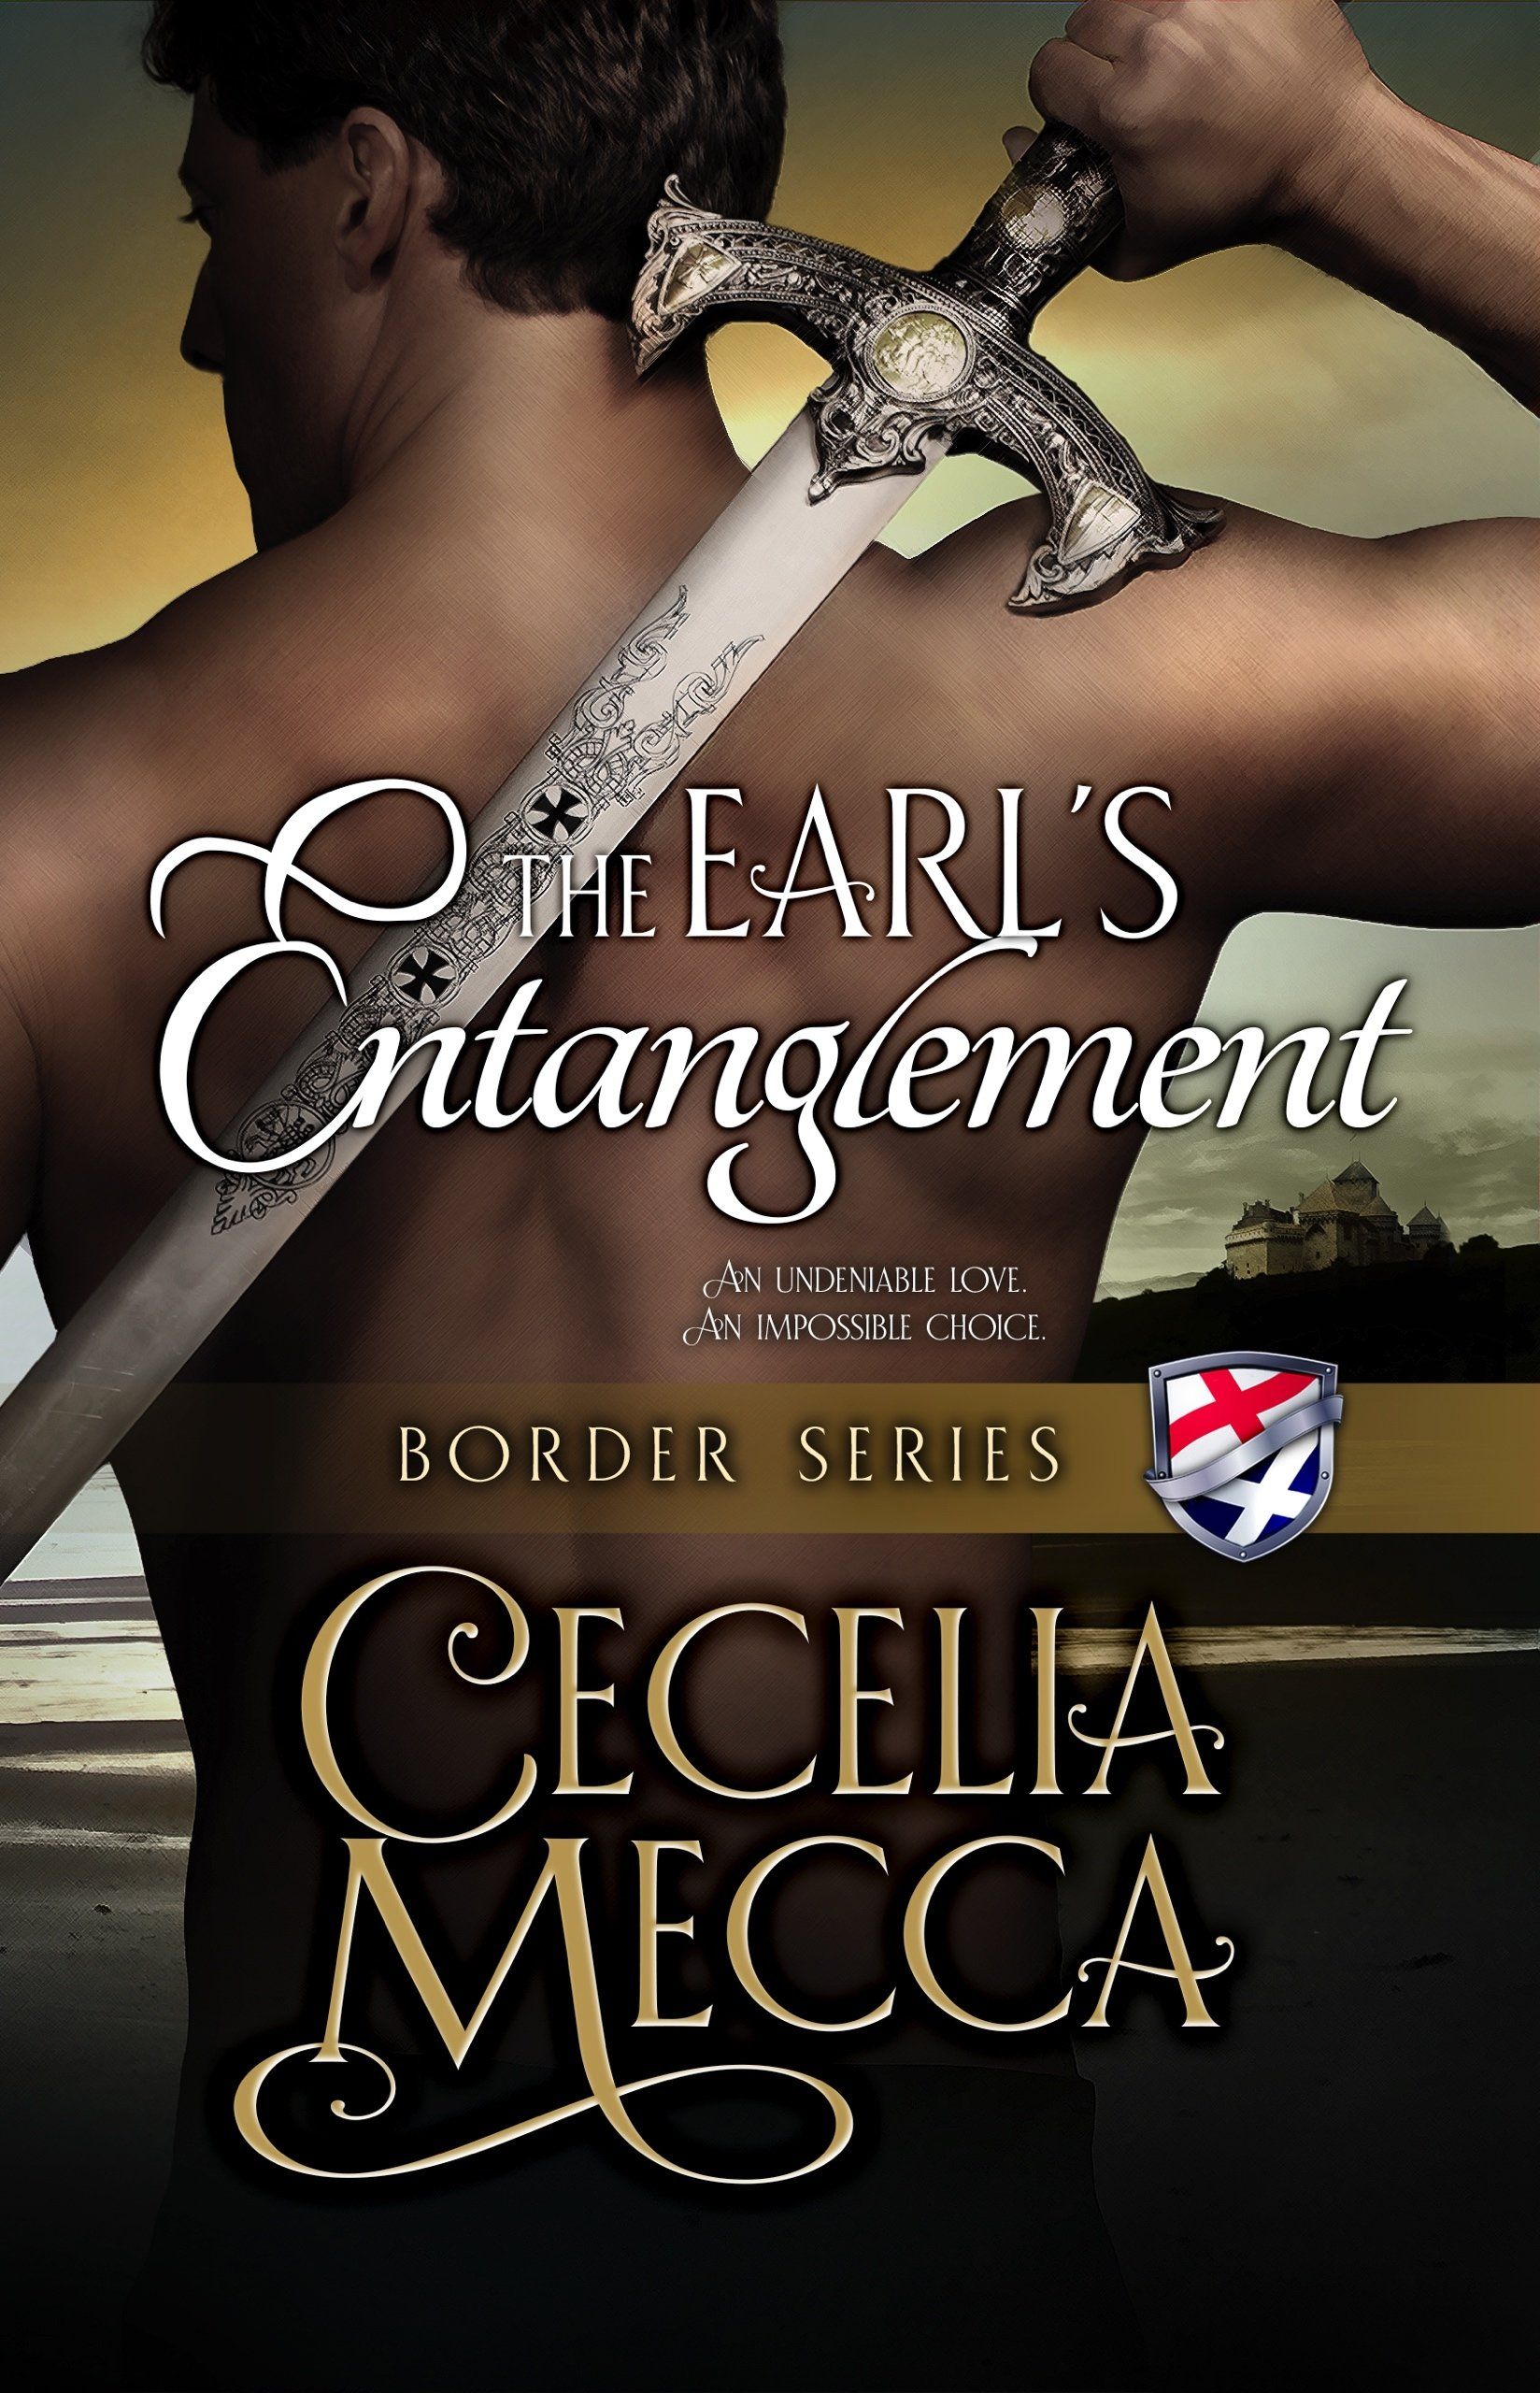 The Earl's Entanglement: Border Series Book 5 00006